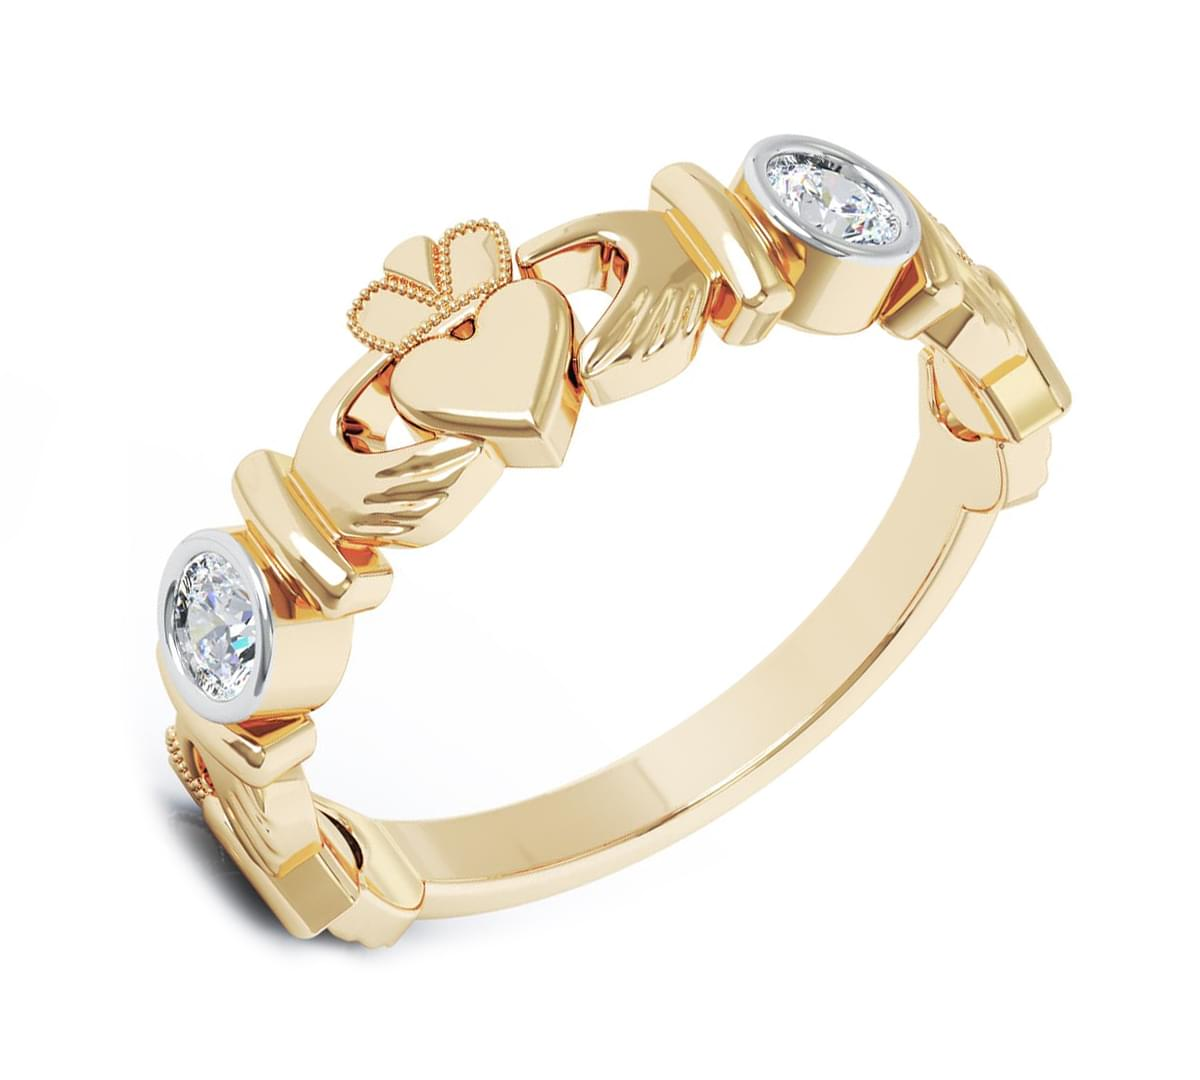 Gold and Diamond Claddagh Ring